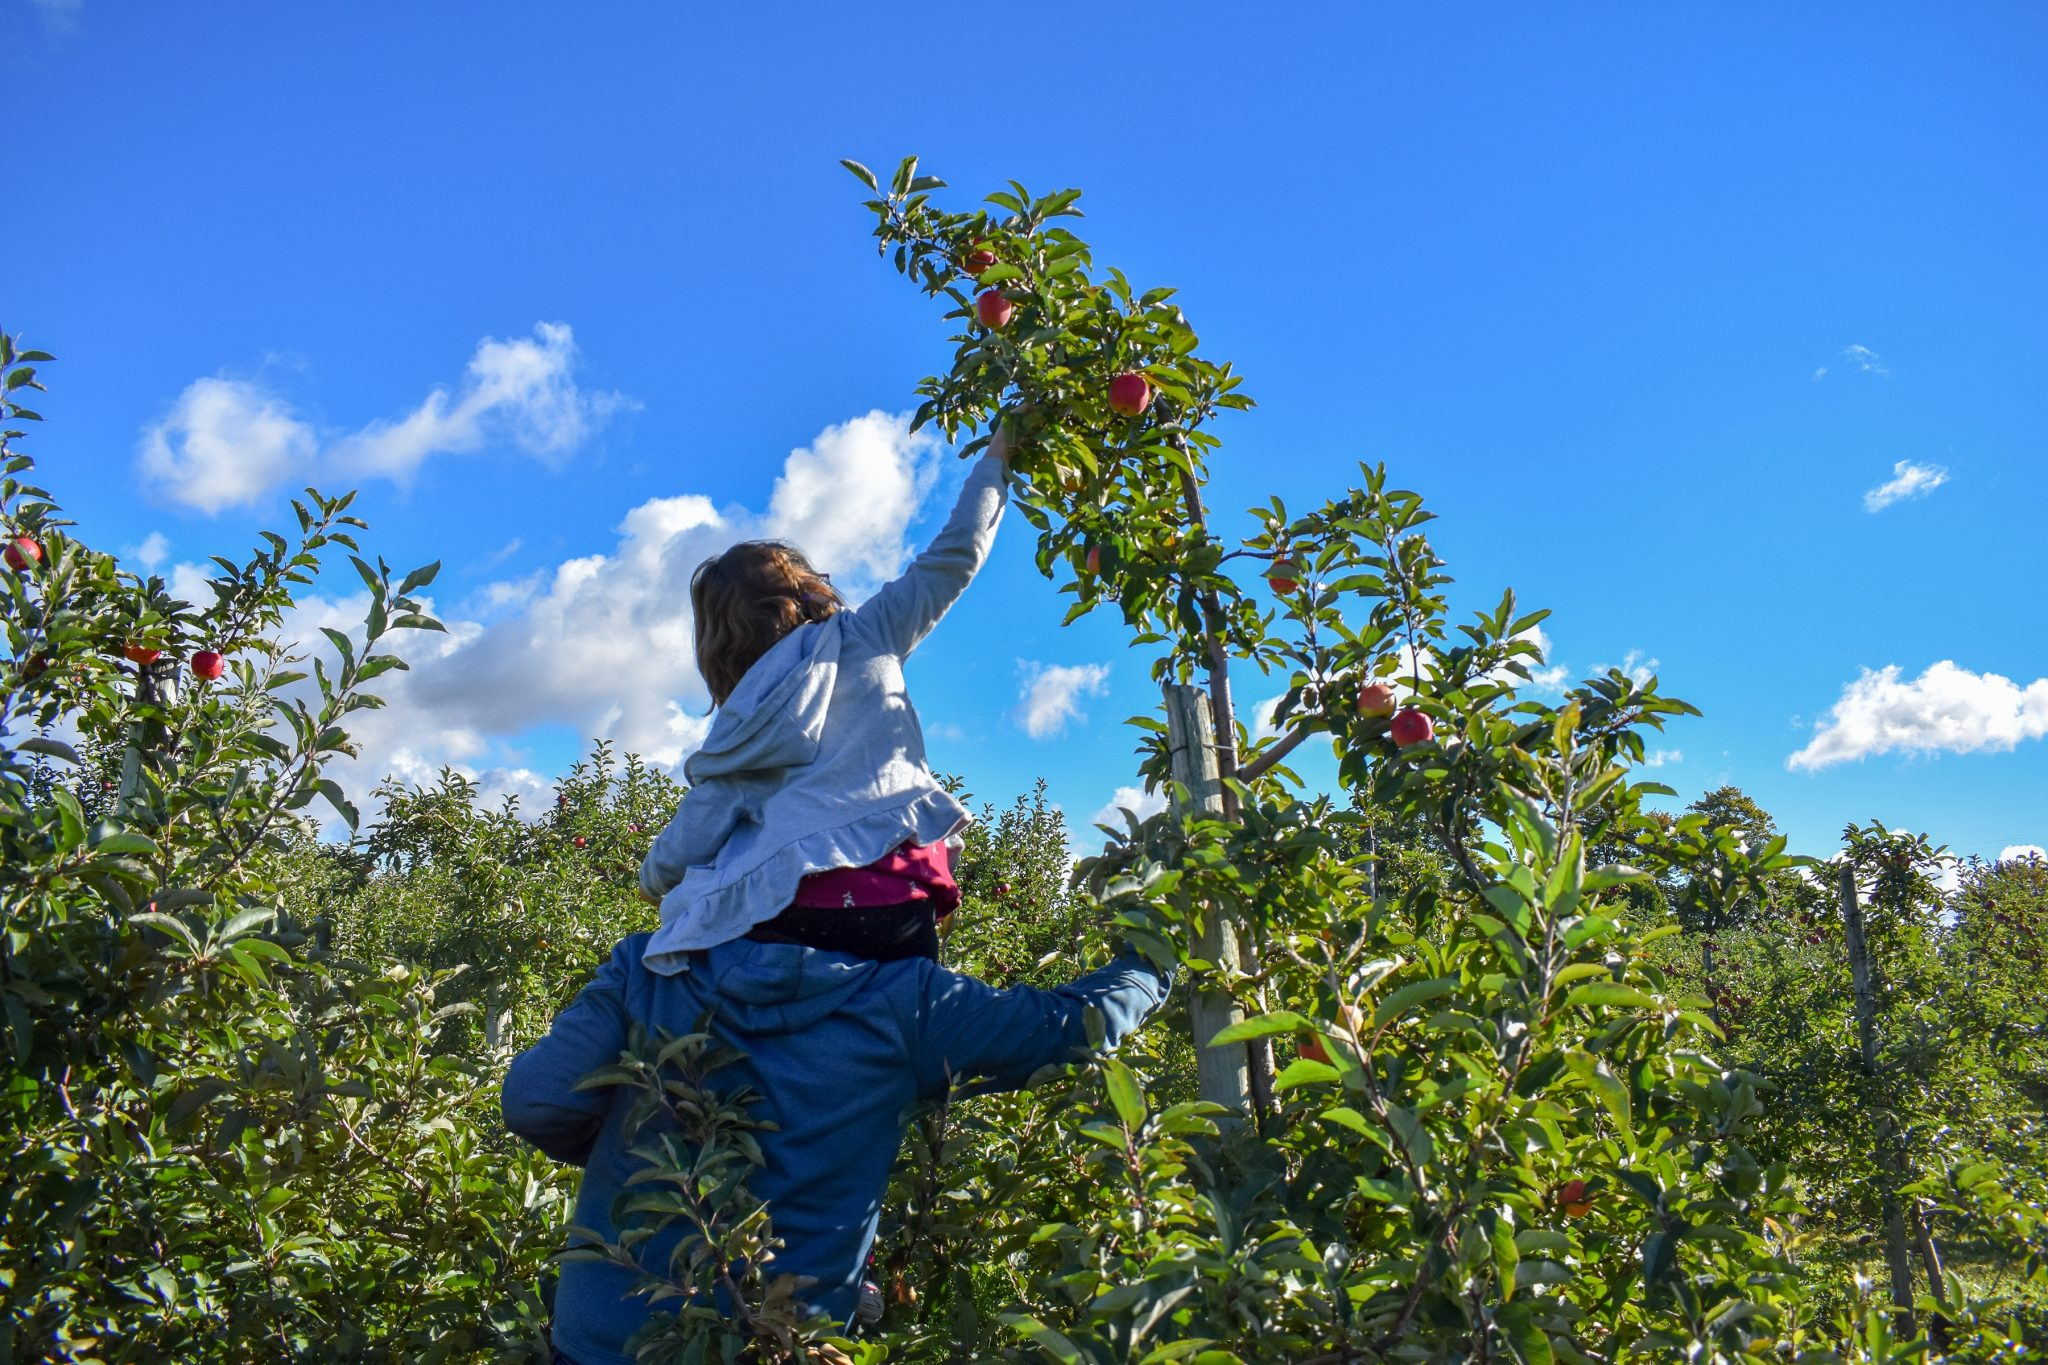 Teamwork makes the dream work: A young girl sits on her dad's shoulders to reach the highest apples. Photo by Laura Thorne.